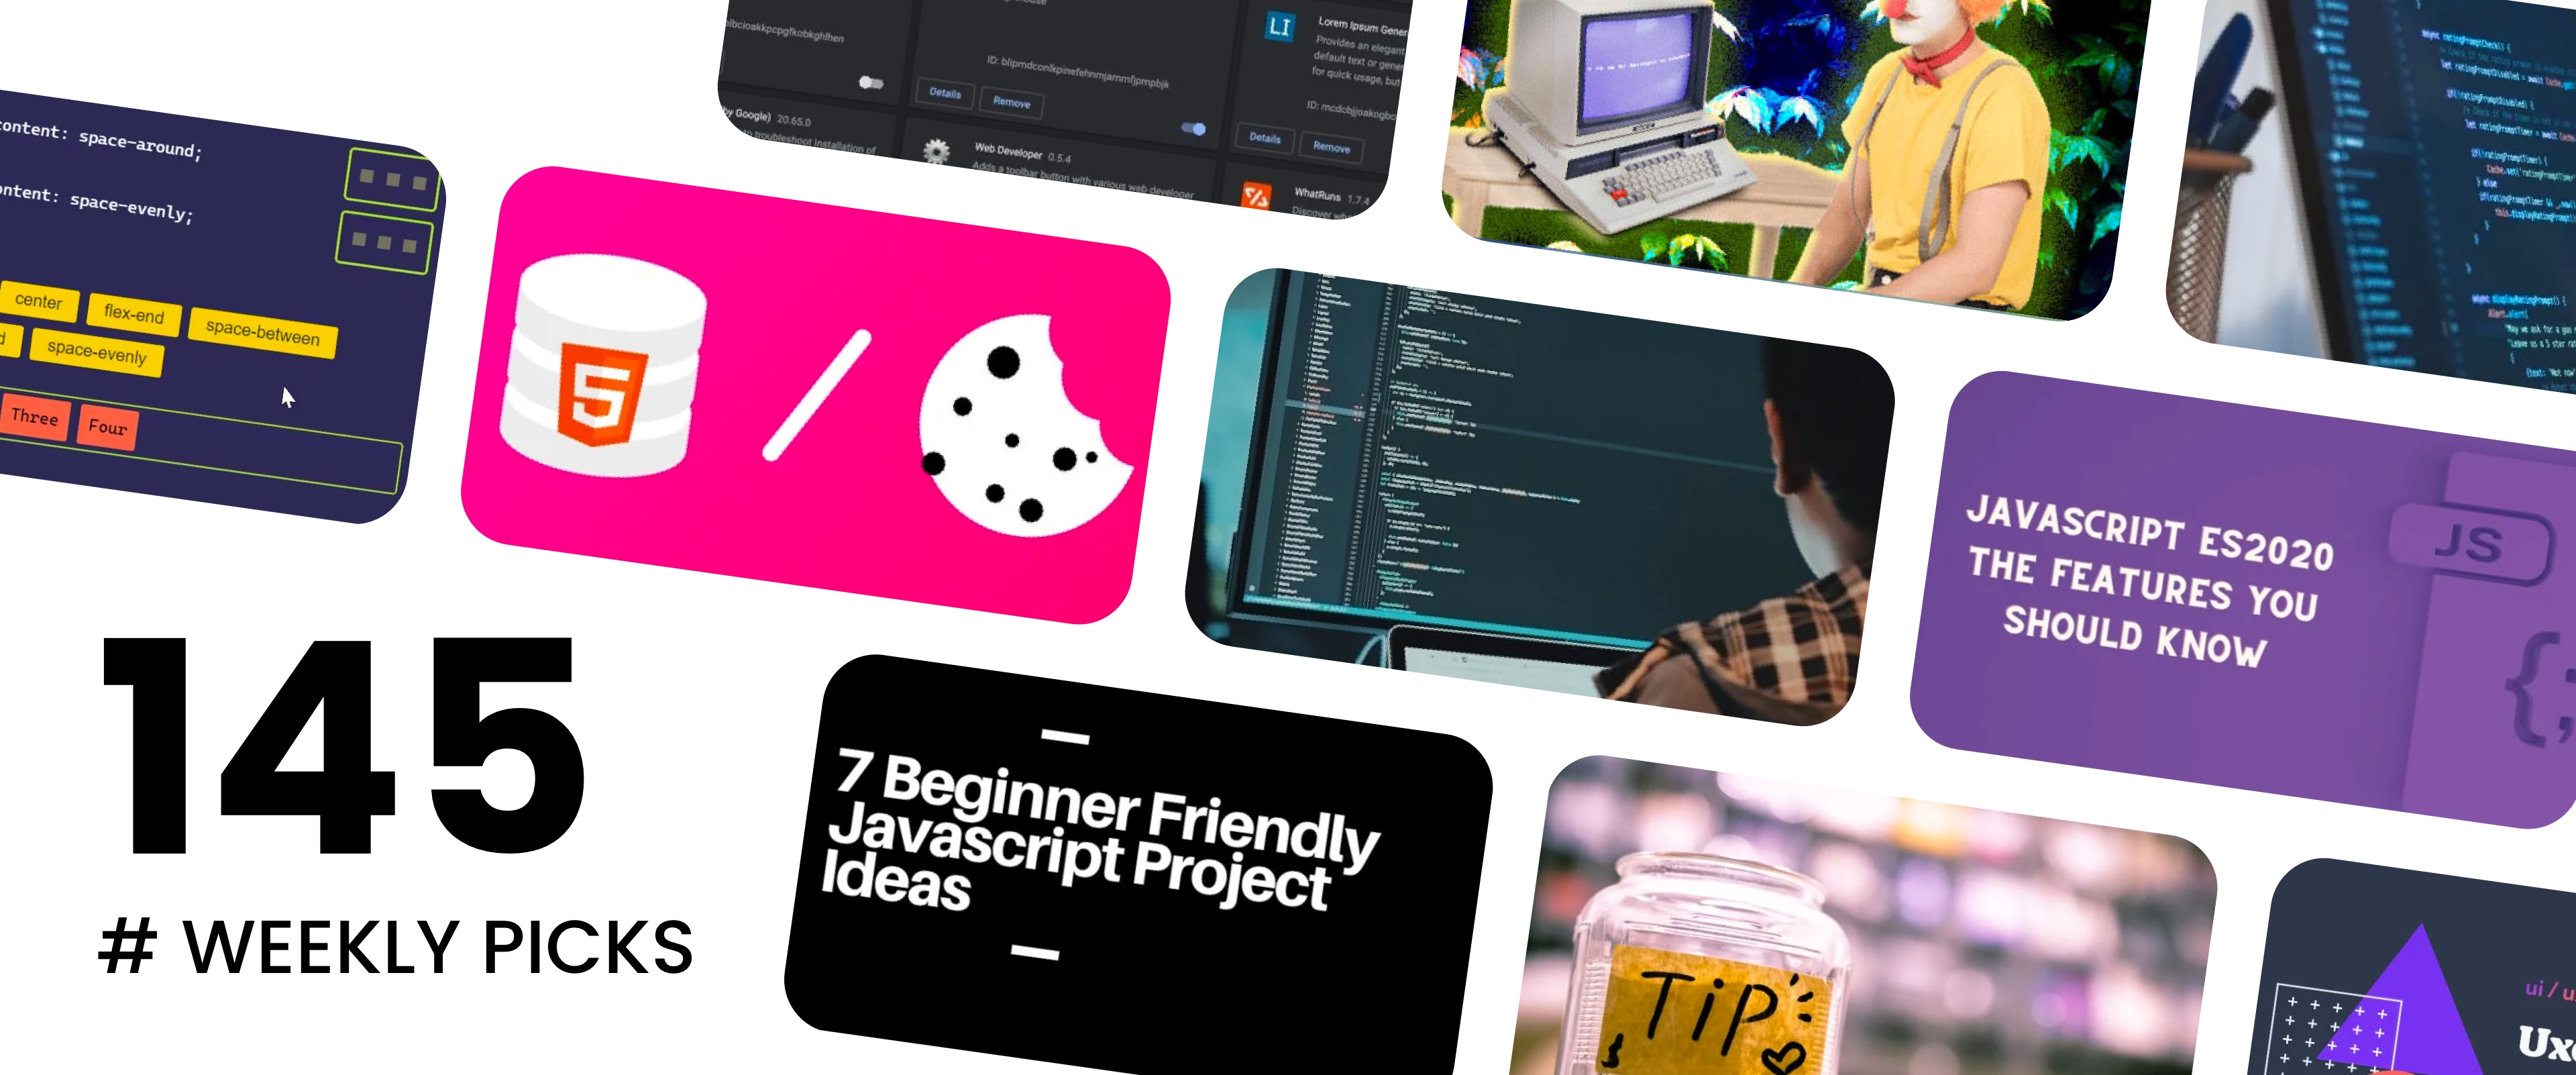 🔥 What's Hot in Web Development? — Weekly Picks #145